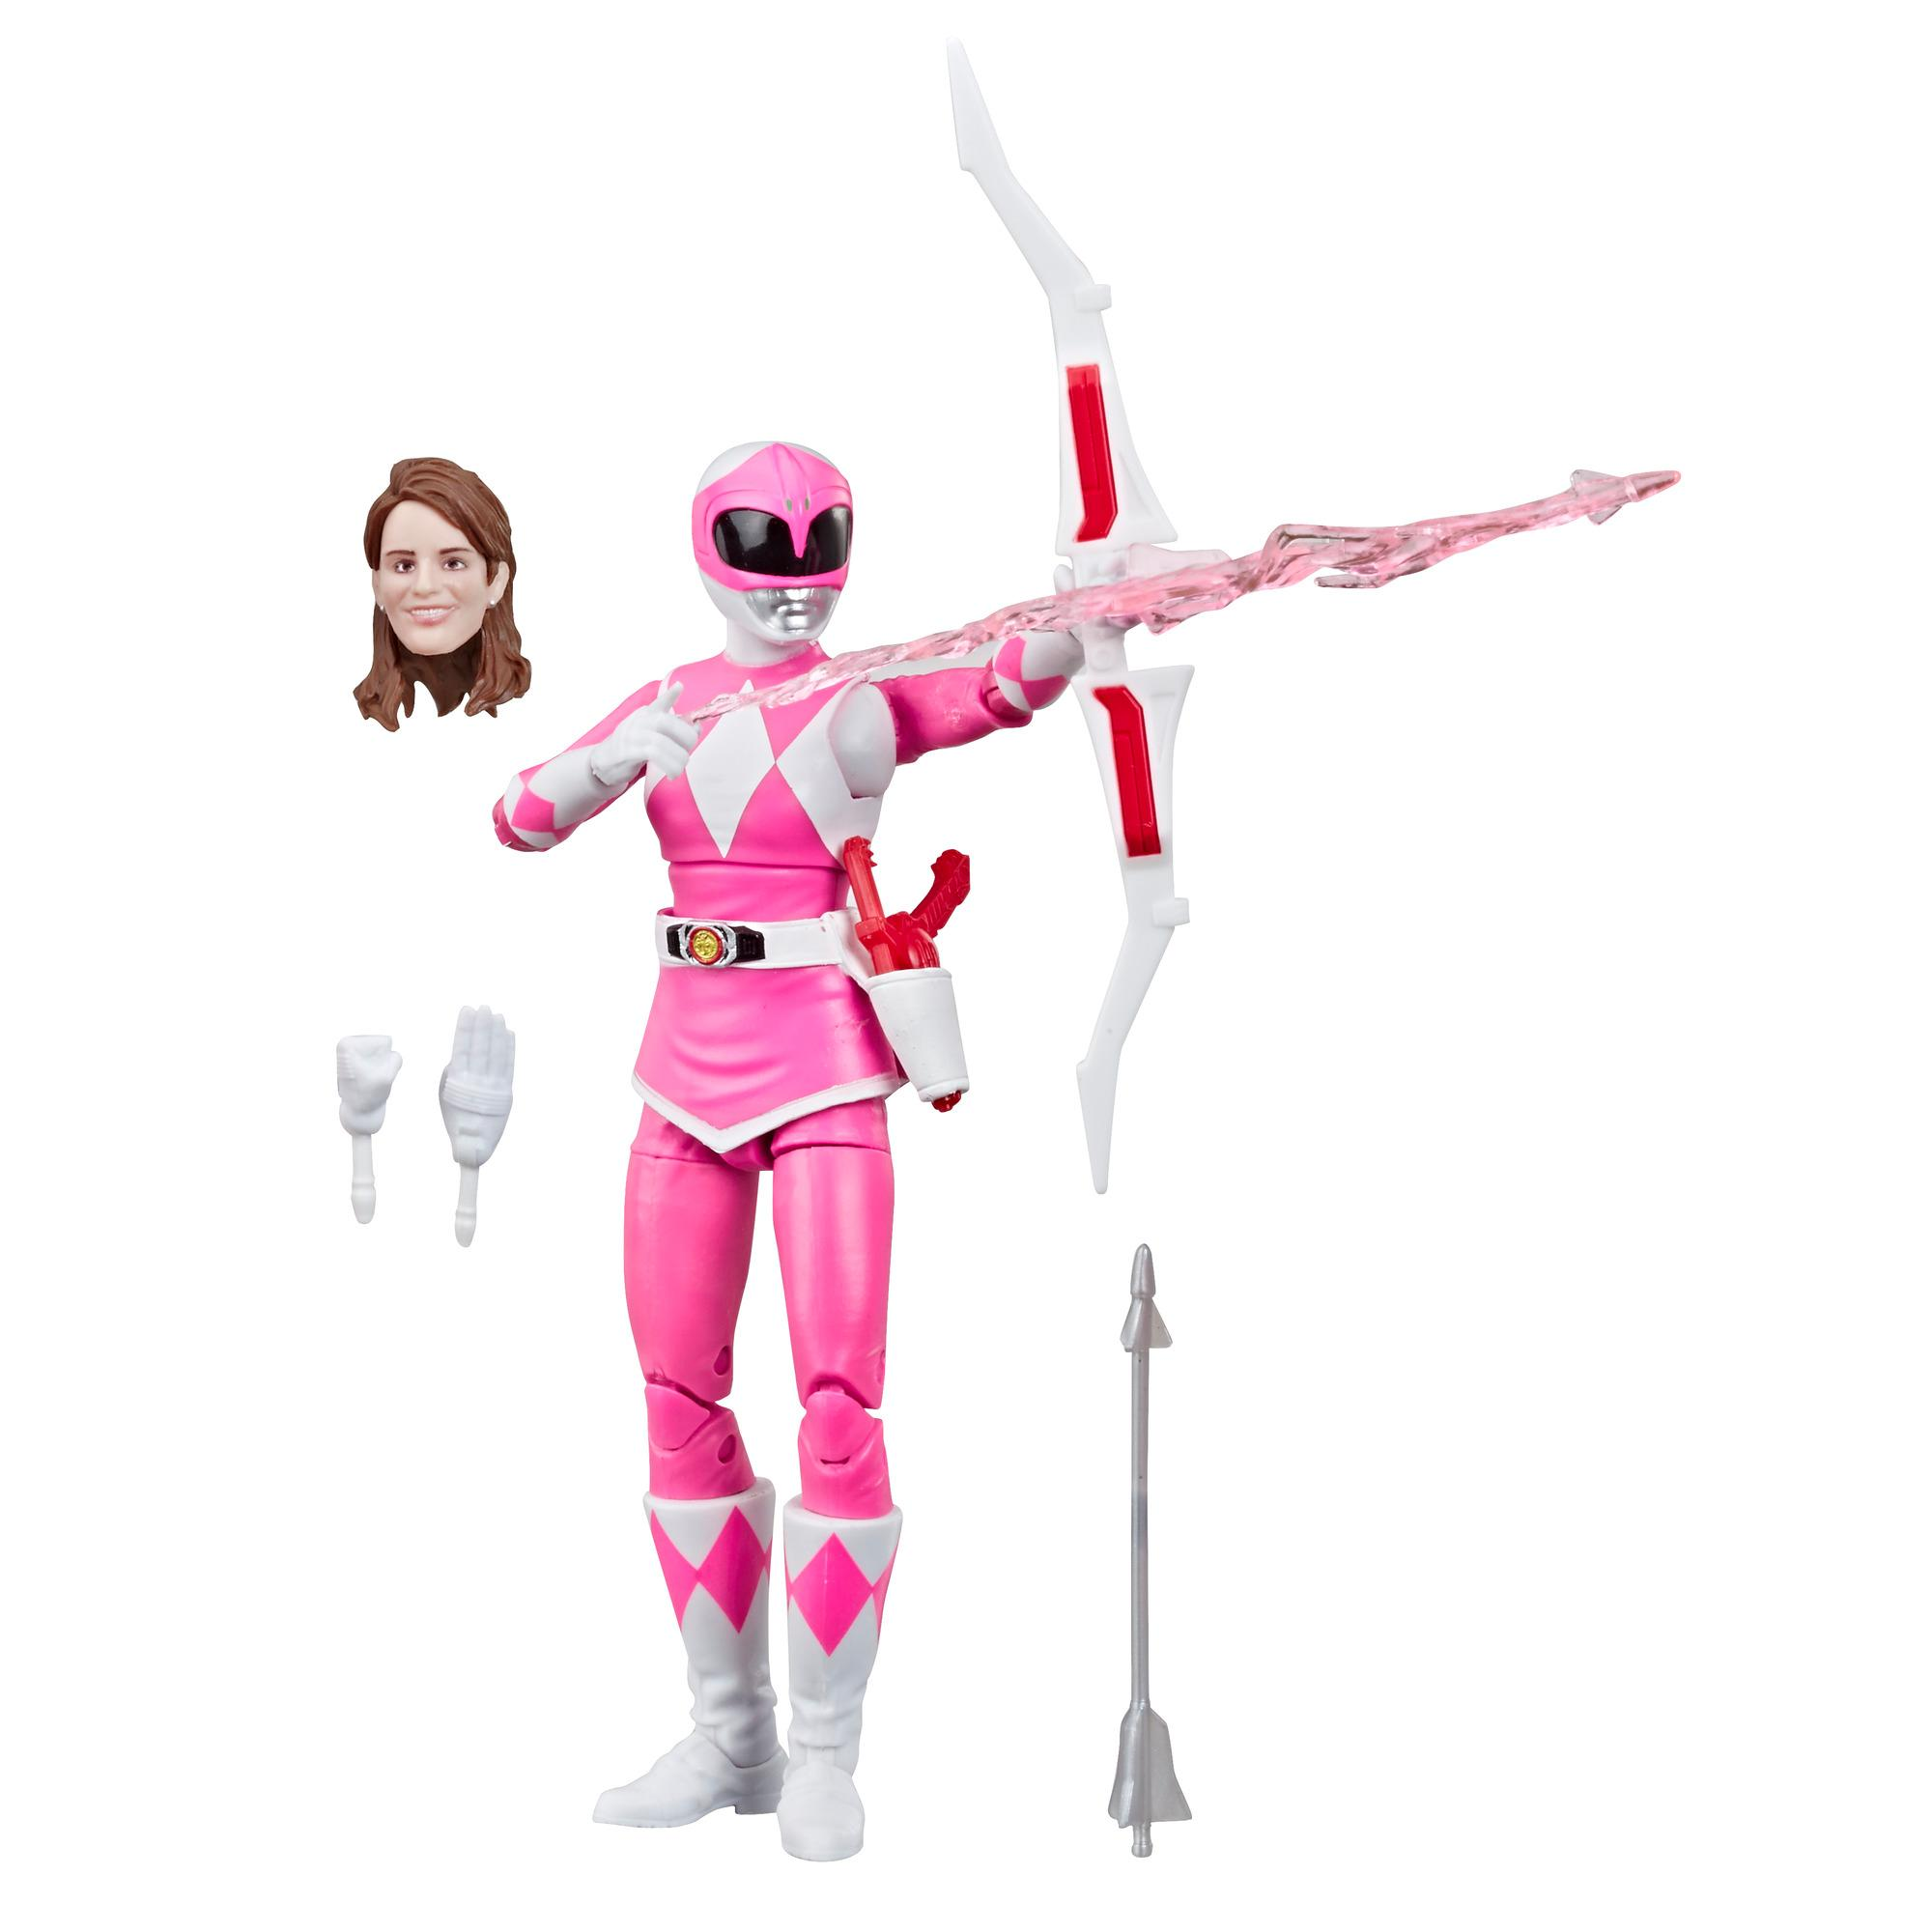 POWER RANGERS PREMIUM - FIGURINES RANGERS MMPR ROSE 15CM